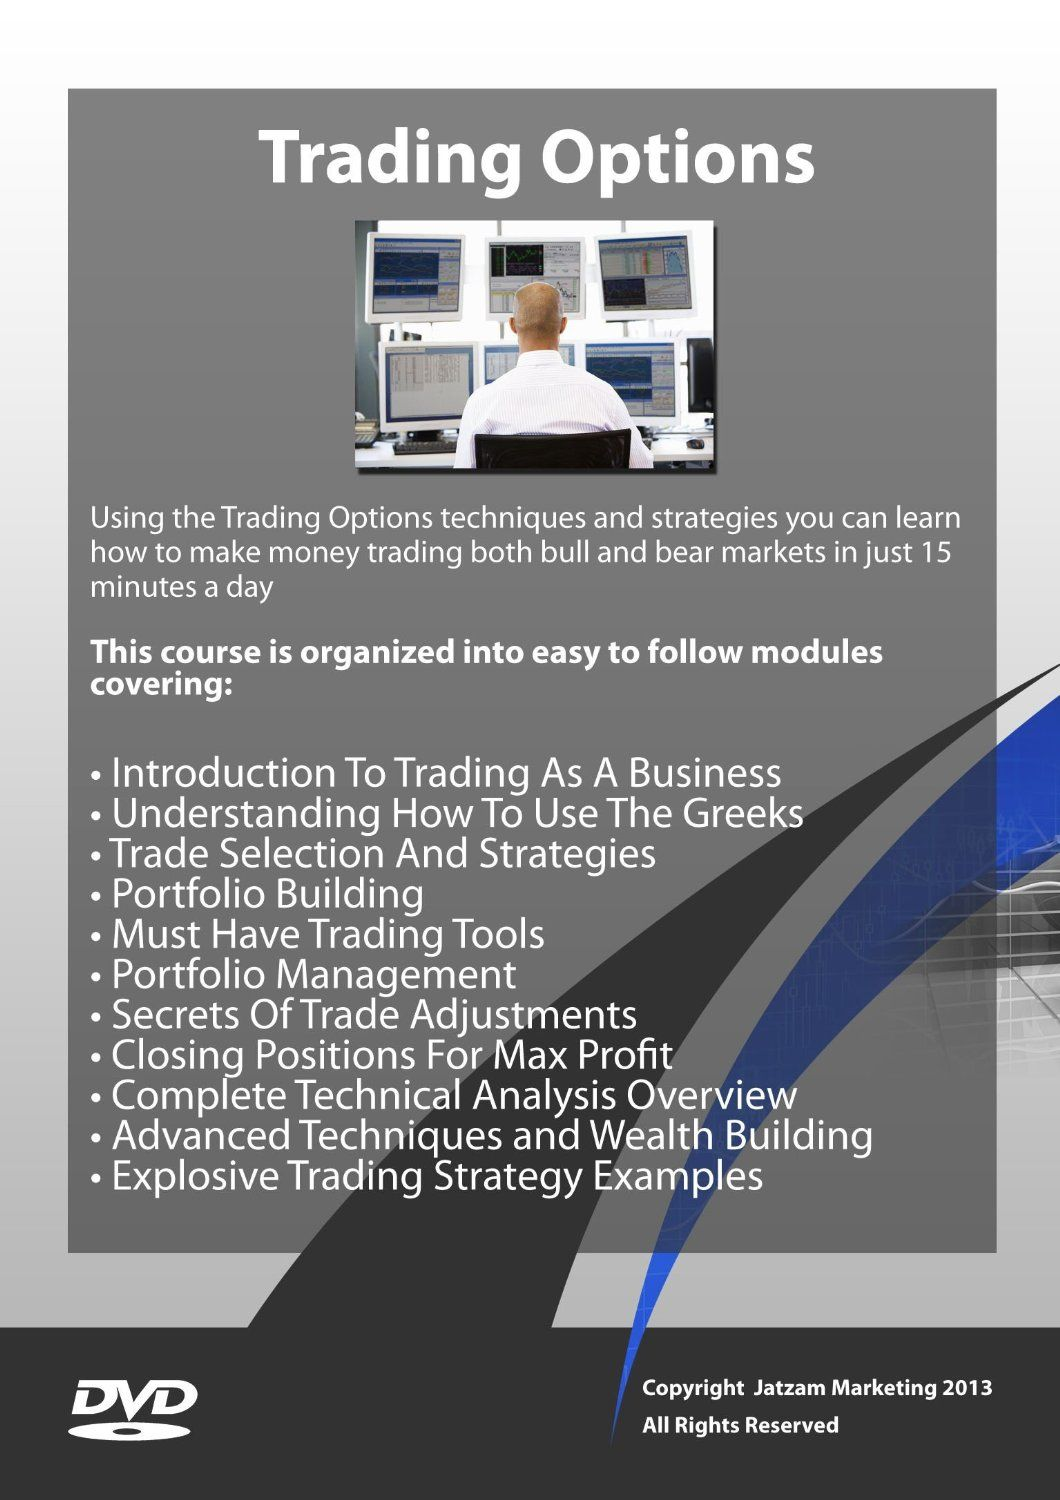 Binary options trading strategies and systems reviews